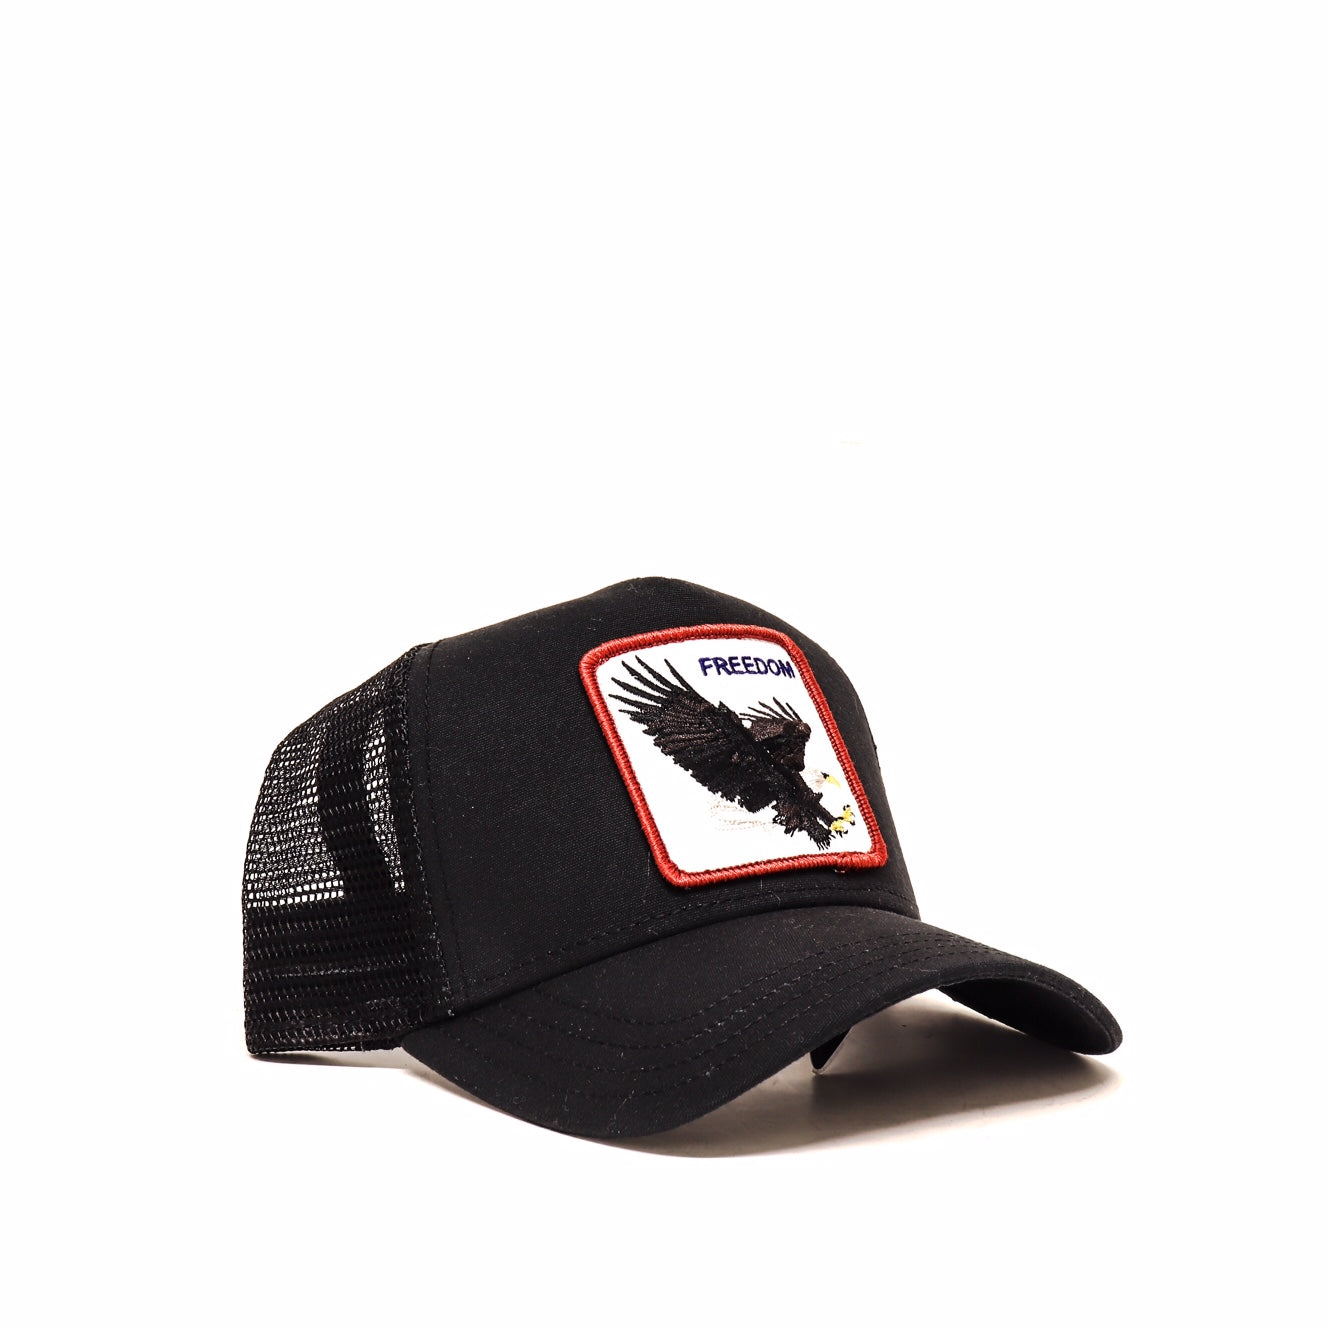 Goorin Bros Cappello Black Freedom